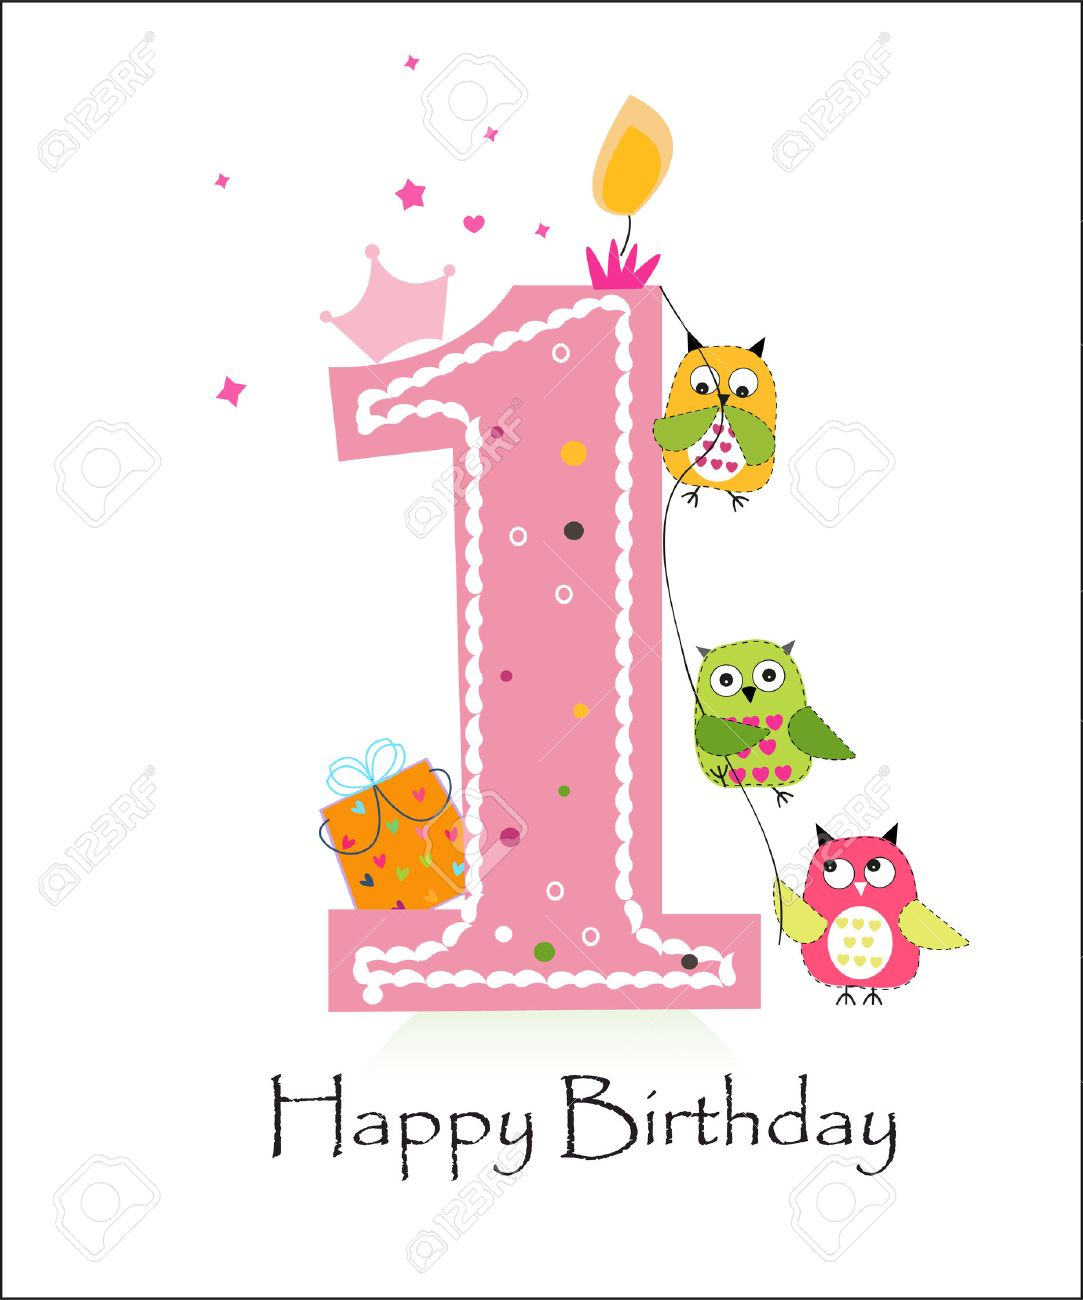 Happy first birthday with owls baby girl greeting card vector - 47878760